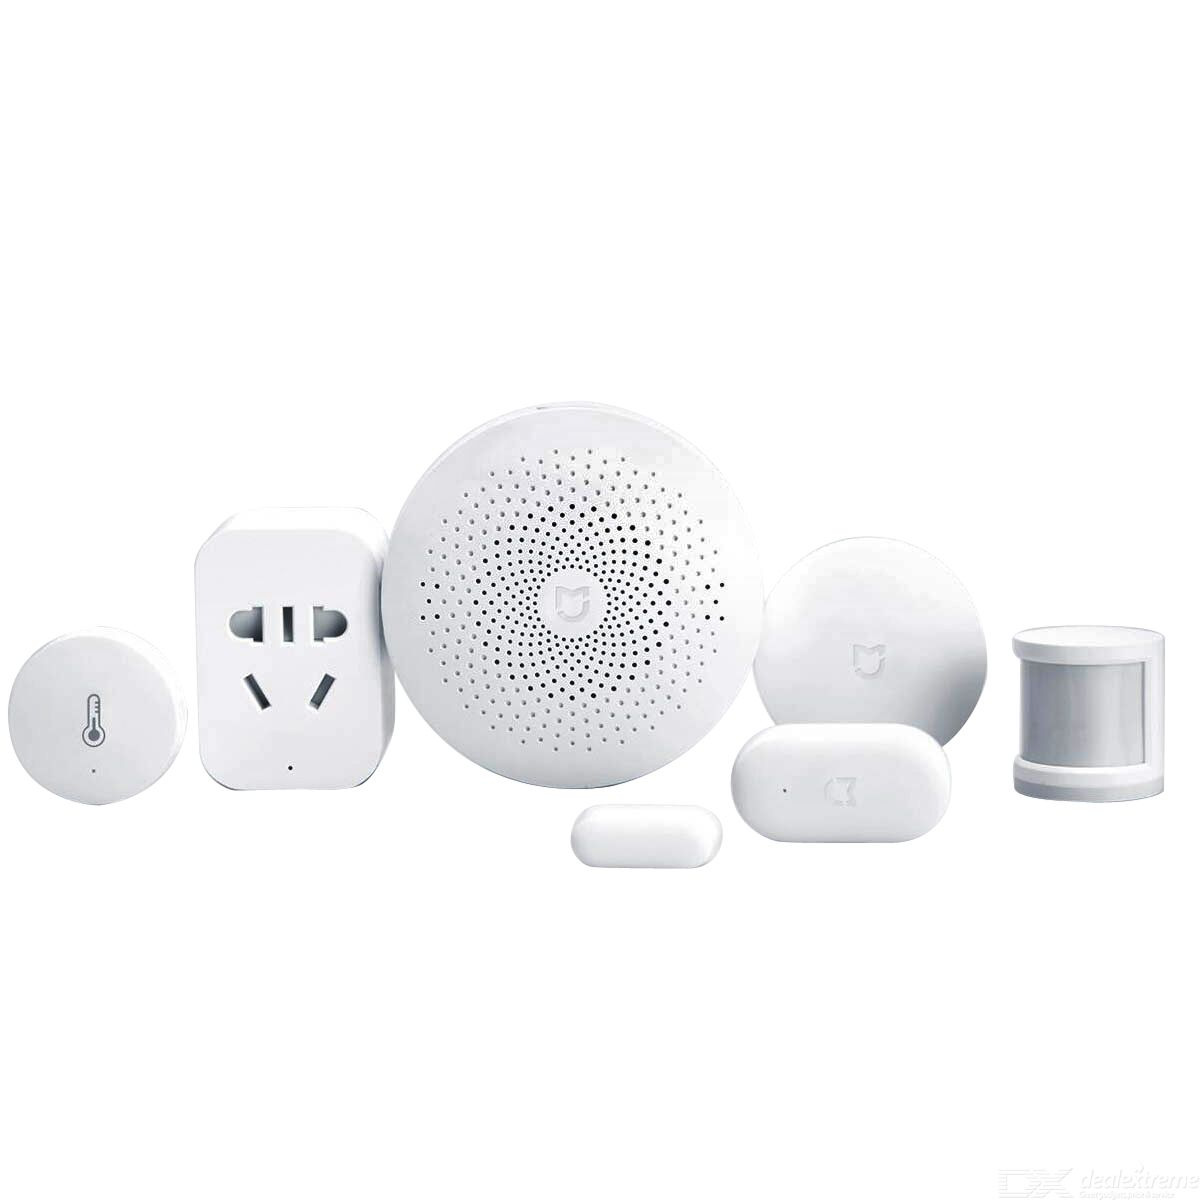 Original Xiaomi 6-in-1 Home Smart Devices (AU Plug), Gateway + Door / Window, Temperature / Humidity, Human Body Sensor